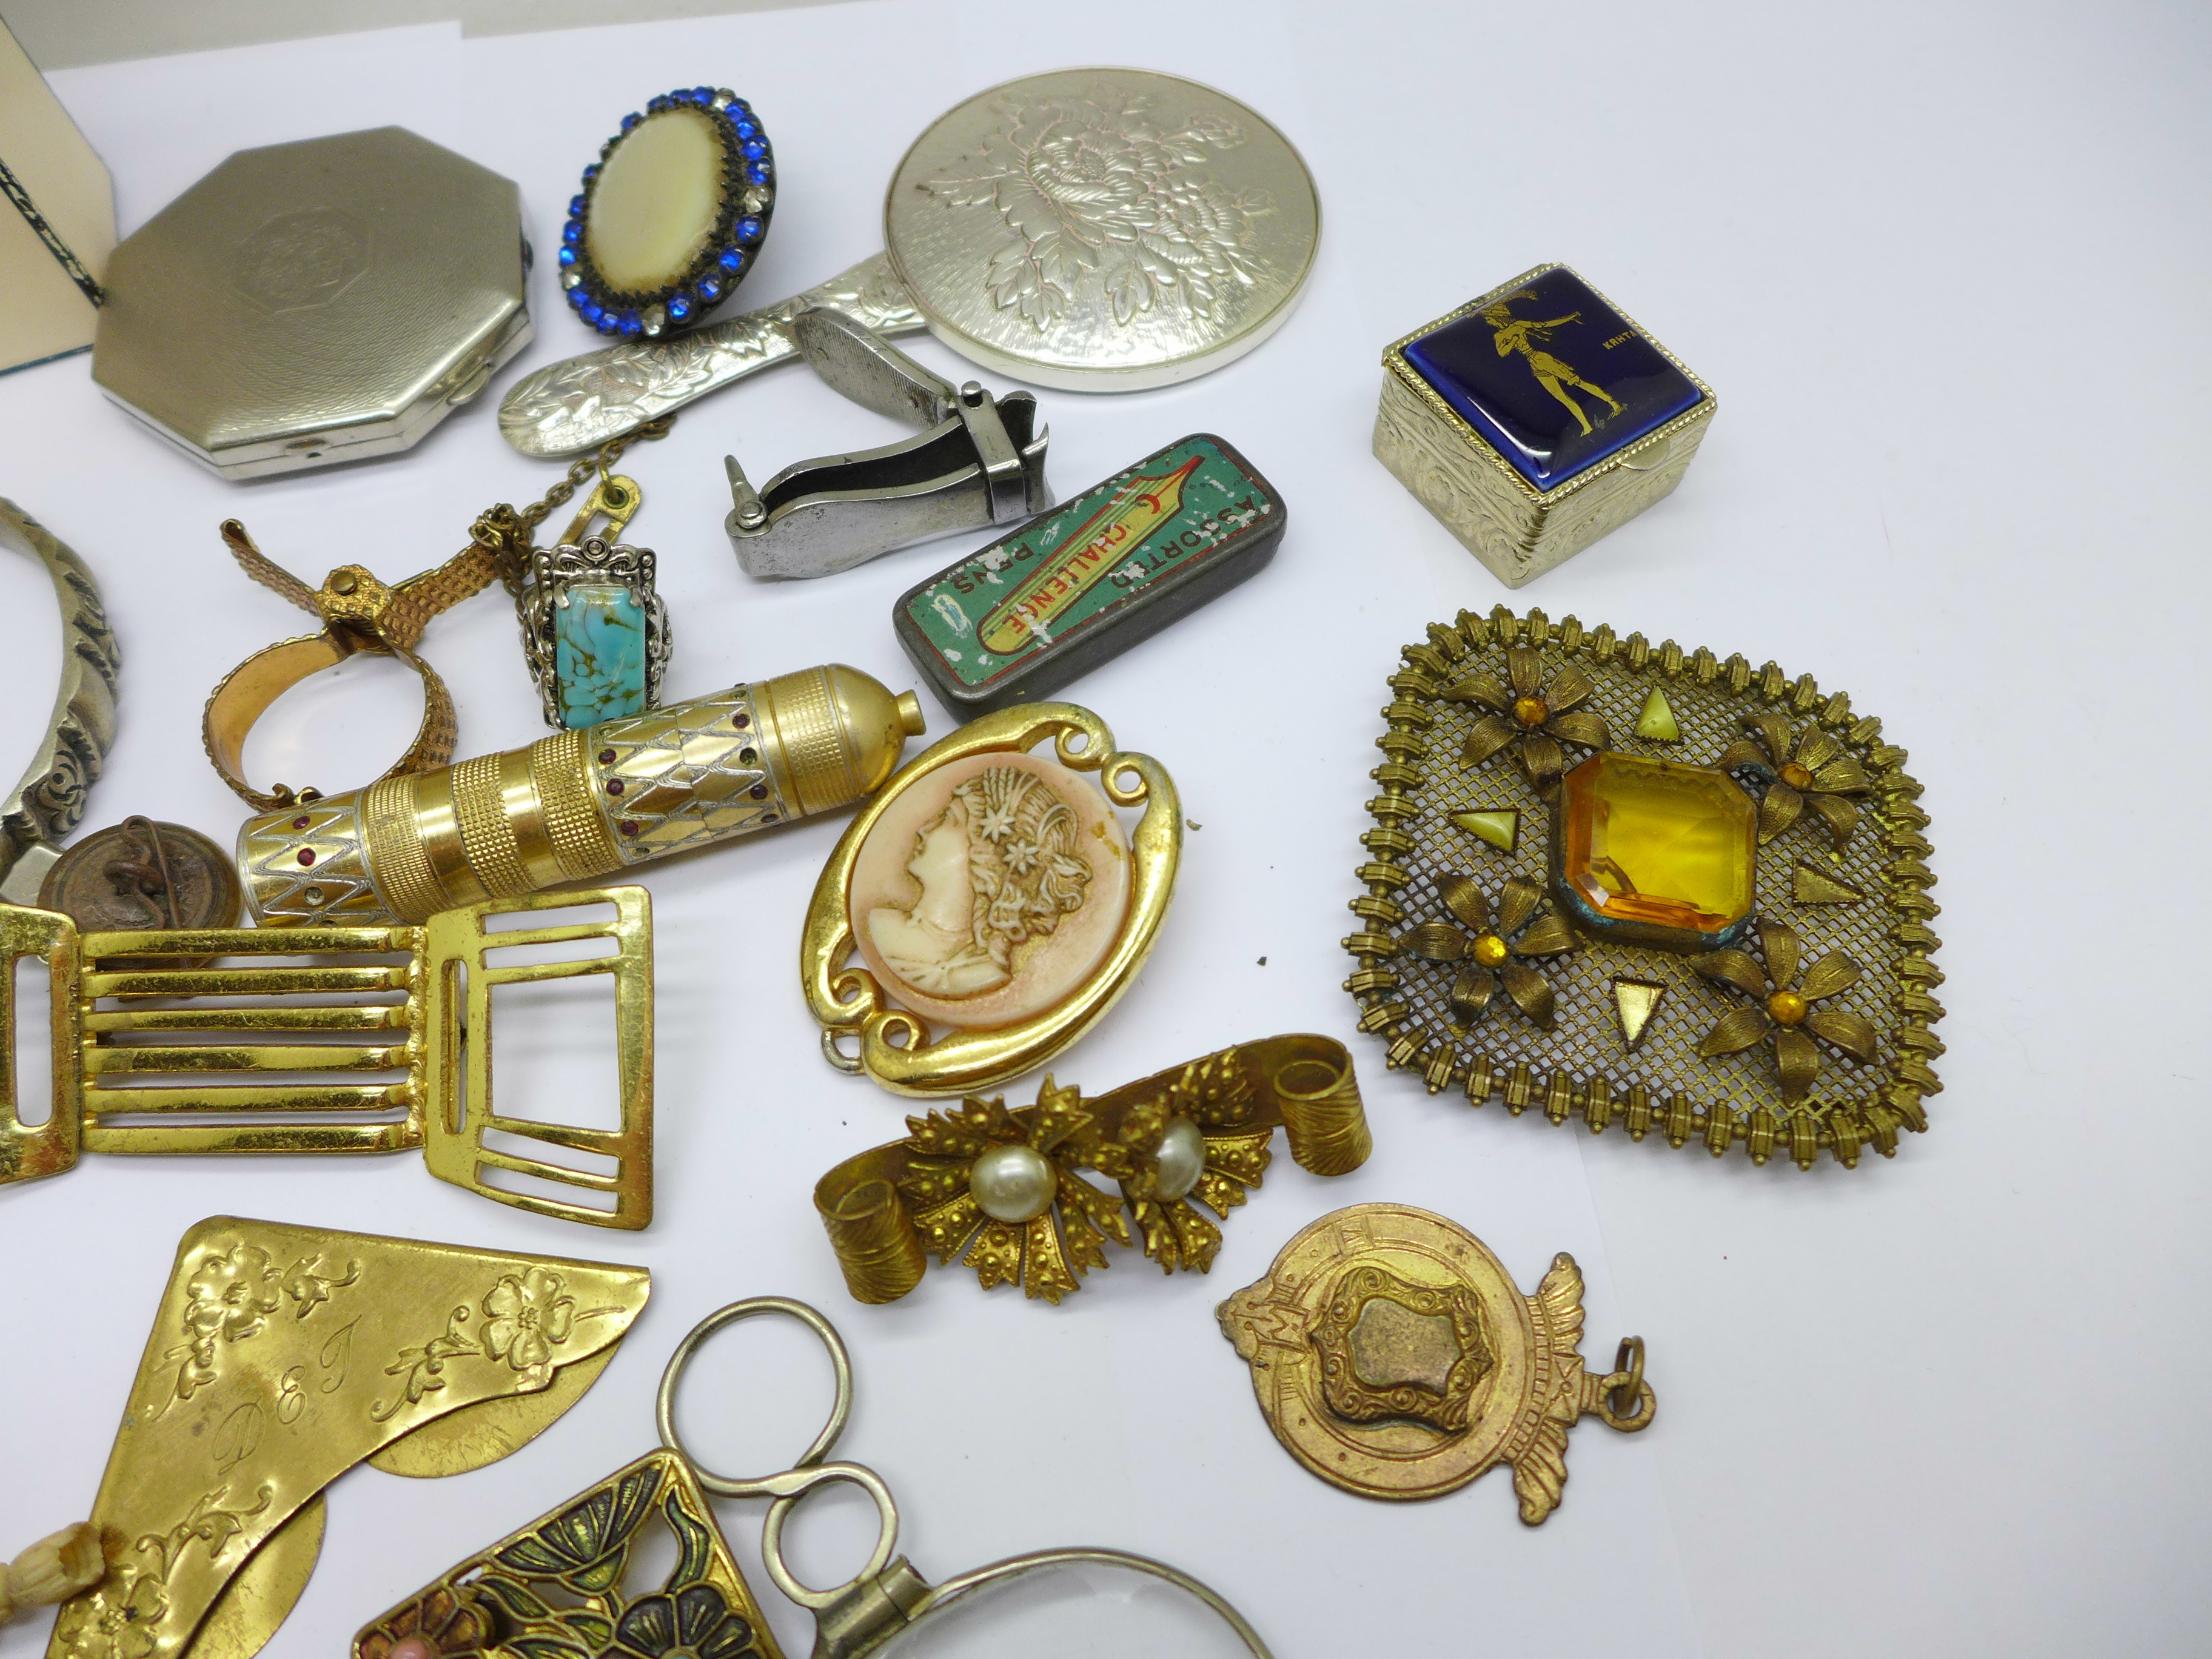 Vintage jewellery, a compact, a mirror, etc. - Image 3 of 4